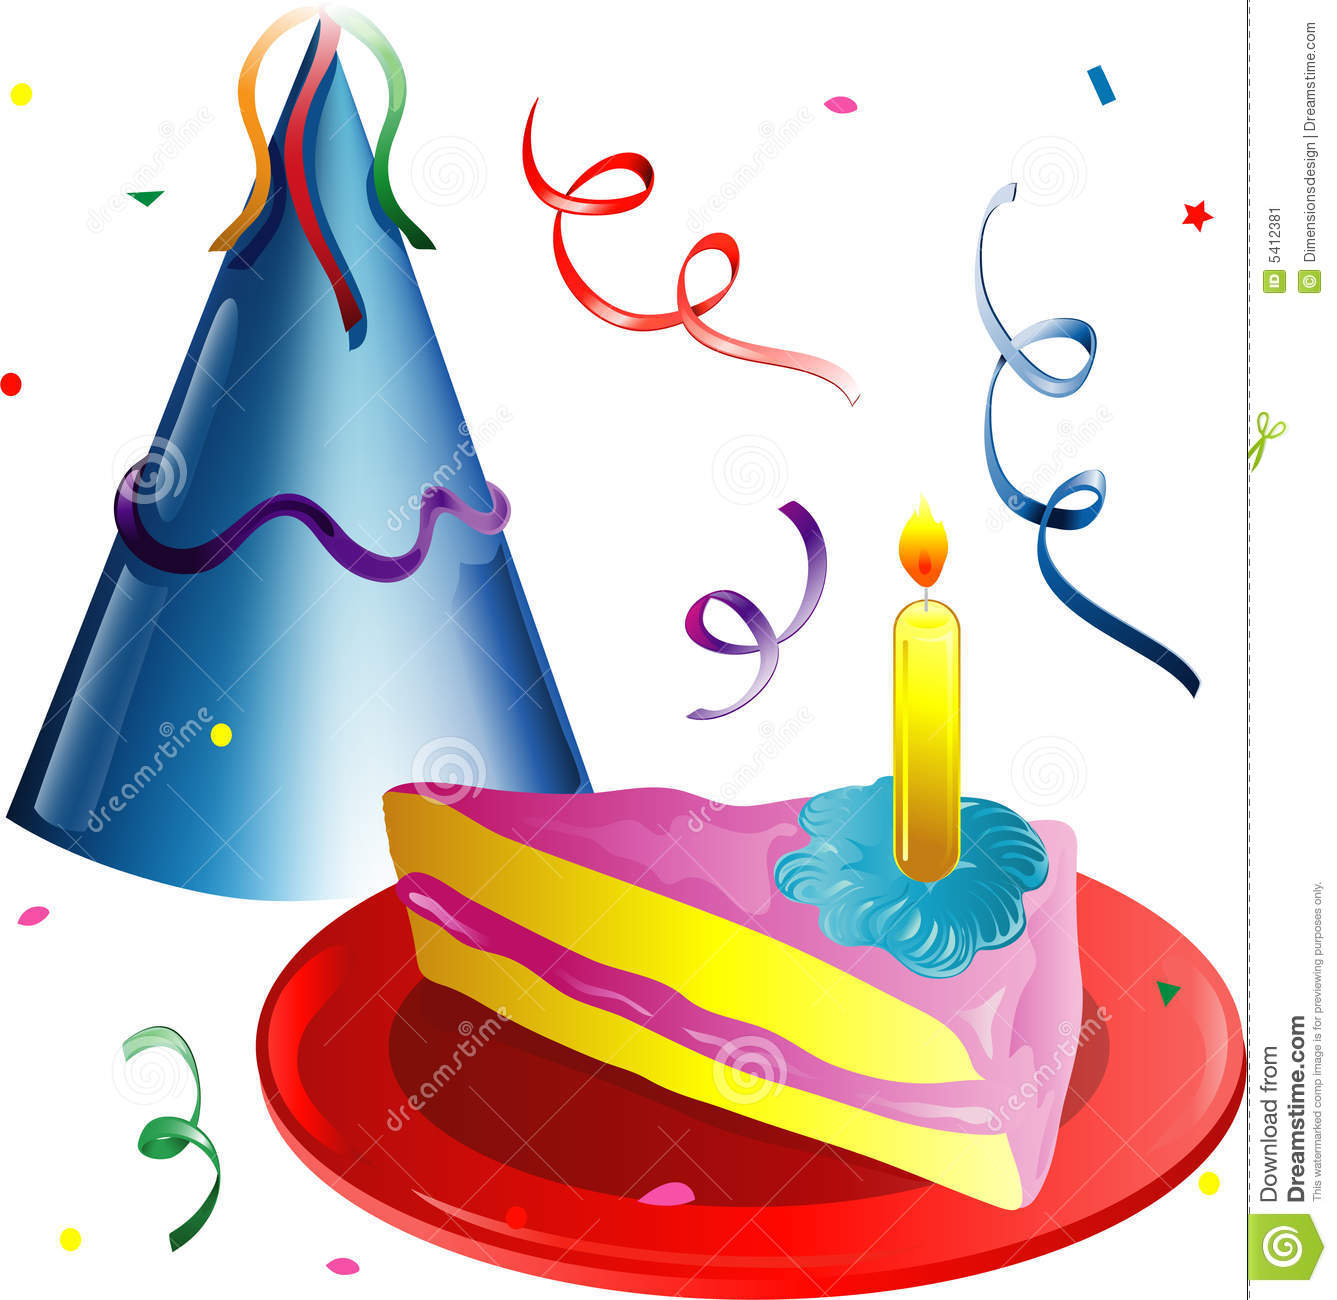 Birthday cake hat clipart clip royalty free library Slice Of Birthday Cake And A Party Hat Royalty Free Stock Images ... clip royalty free library